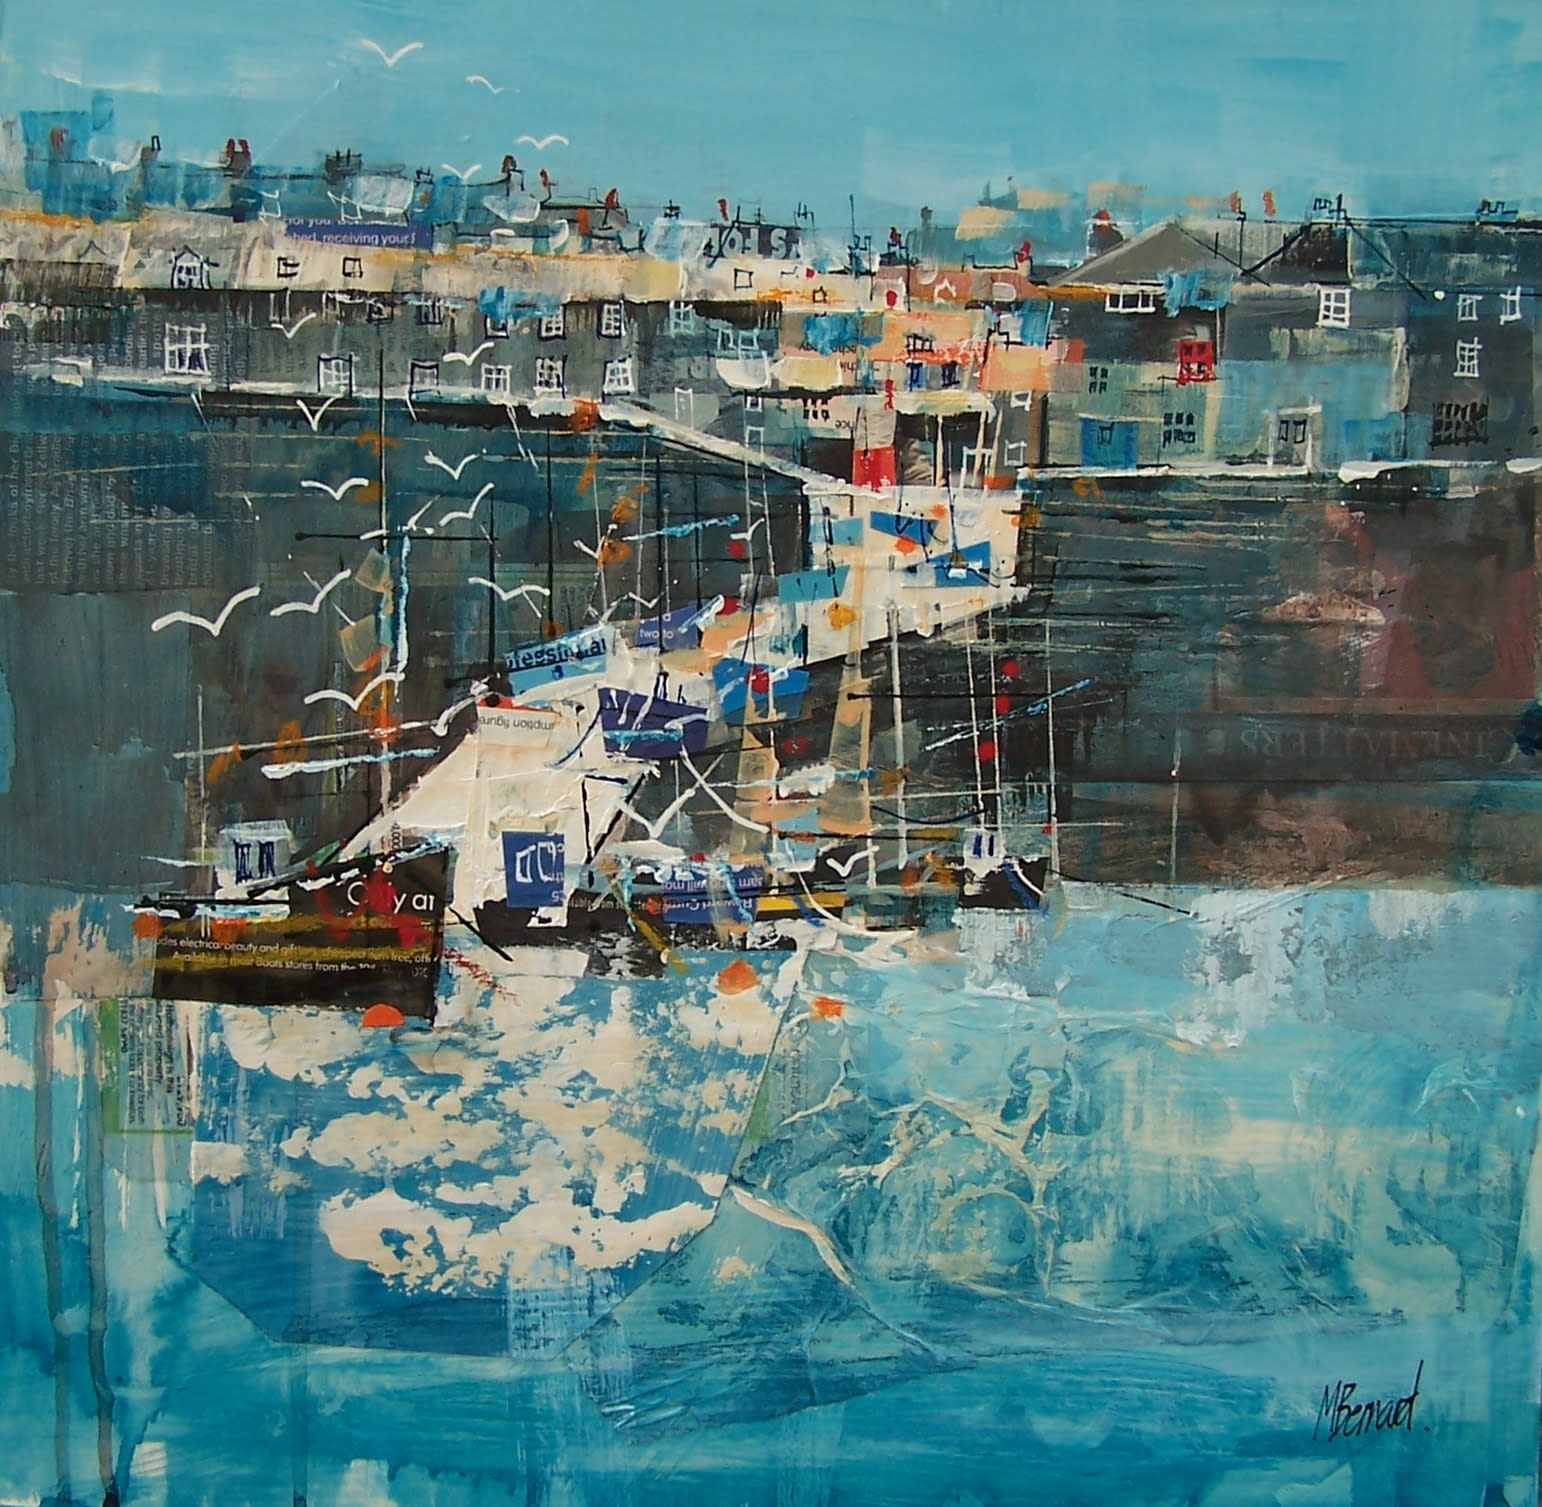 "<span class=""link fancybox-details-link""><a href=""/artists/155-mike-bernard-ri/works/5784-mike-bernard-ri-harbour-slipway-cornwall-2018/"">View Detail Page</a></span><div class=""artist""><strong>Mike Bernard RI</strong></div> b. 1957 <div class=""title""><em>Harbour Slipway, Cornwall</em>, 2018</div> <div class=""signed_and_dated"">signed by the artist</div> <div class=""medium"">Mixed media on canvas</div> <div class=""dimensions"">25.4 x 25.4 cm<br /> 10 x 10 inches</div><div class=""copyright_line"">OwnArt: £ 75 x 10 Months, 0% APR</div>"